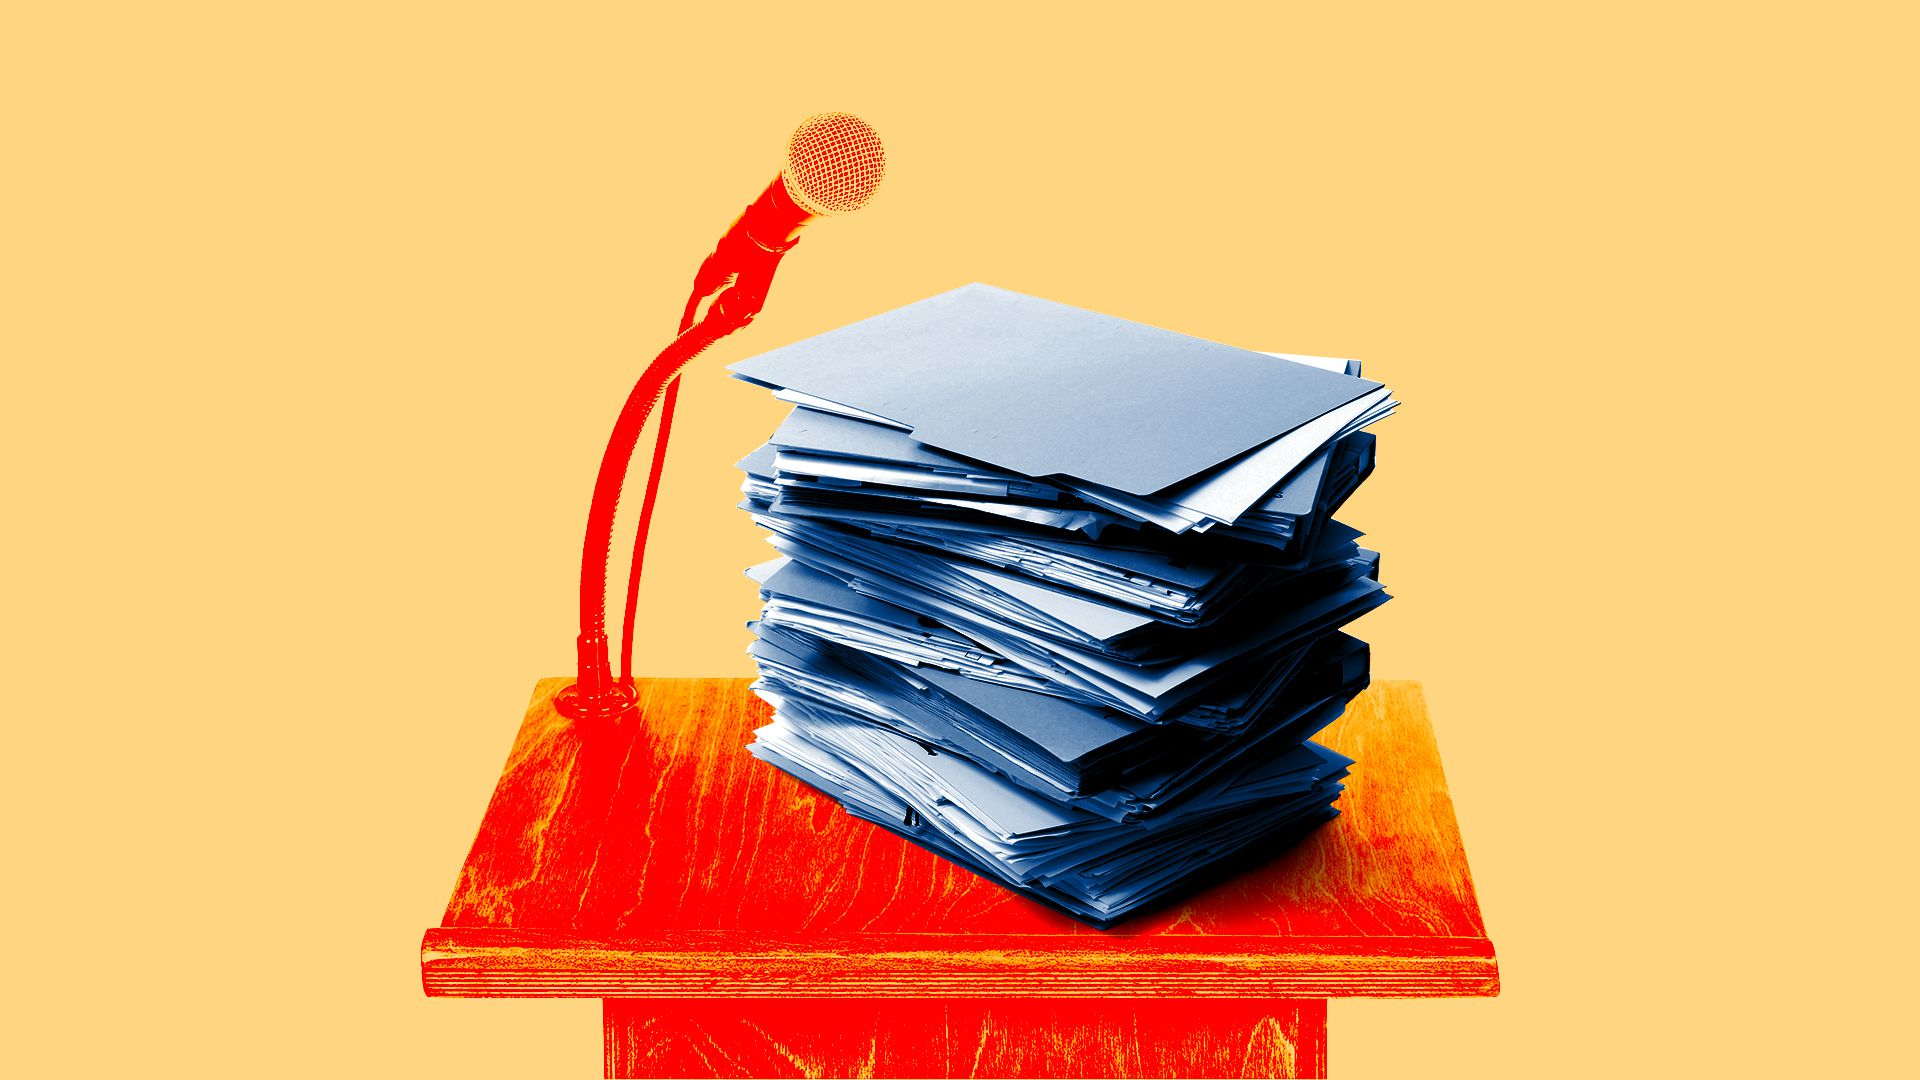 stack of file folders on a lectern with a microphone